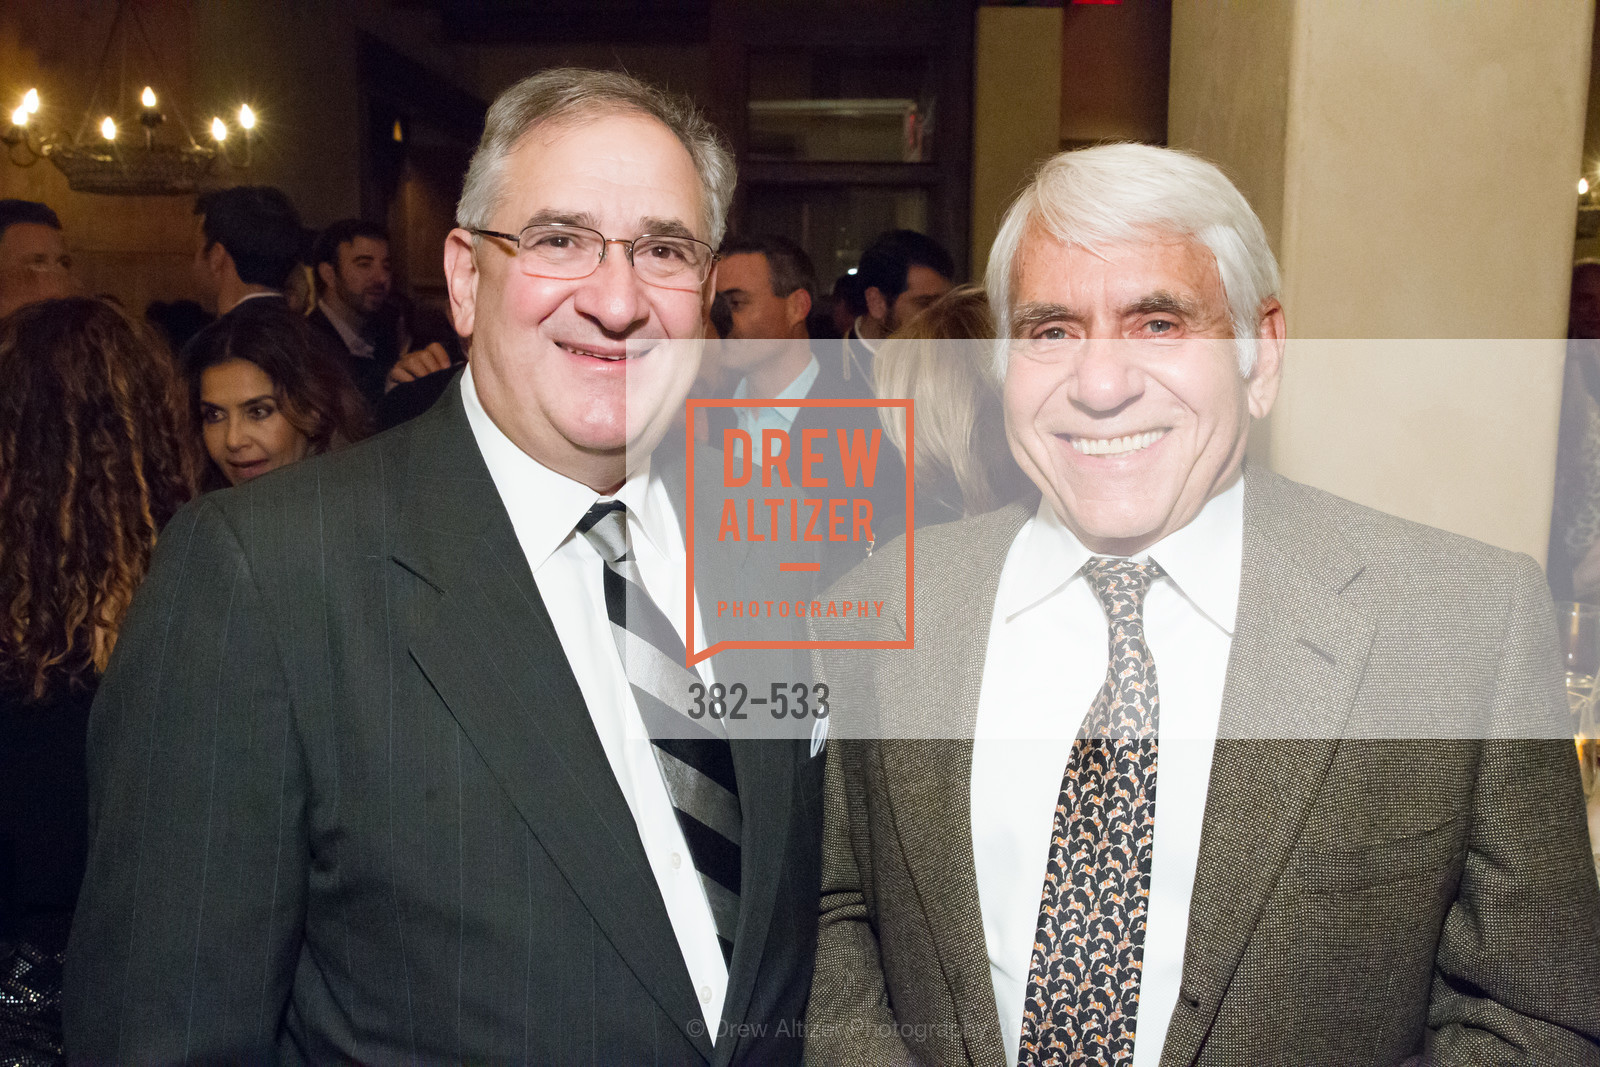 Art Dimopoulos, John Grillos, Hellenic Charity Ball Cocktail Reception, Kokkari. 200 Jackson St, San Francisco, CA 94111, November 13th, 2015,Drew Altizer, Drew Altizer Photography, full-service agency, private events, San Francisco photographer, photographer california